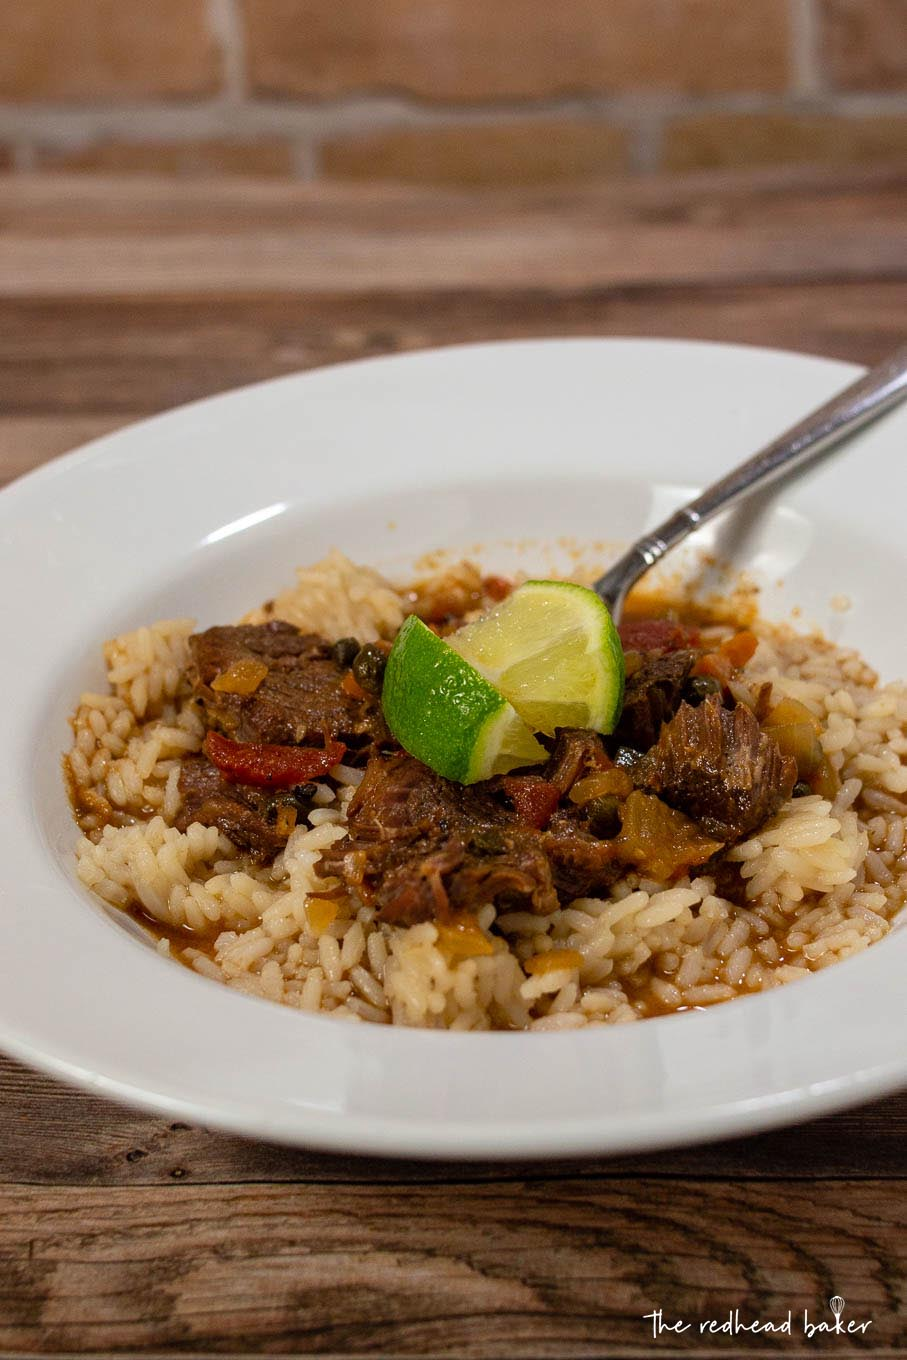 A dish of Cuban Ropa Vieja with lime wedges for garnish